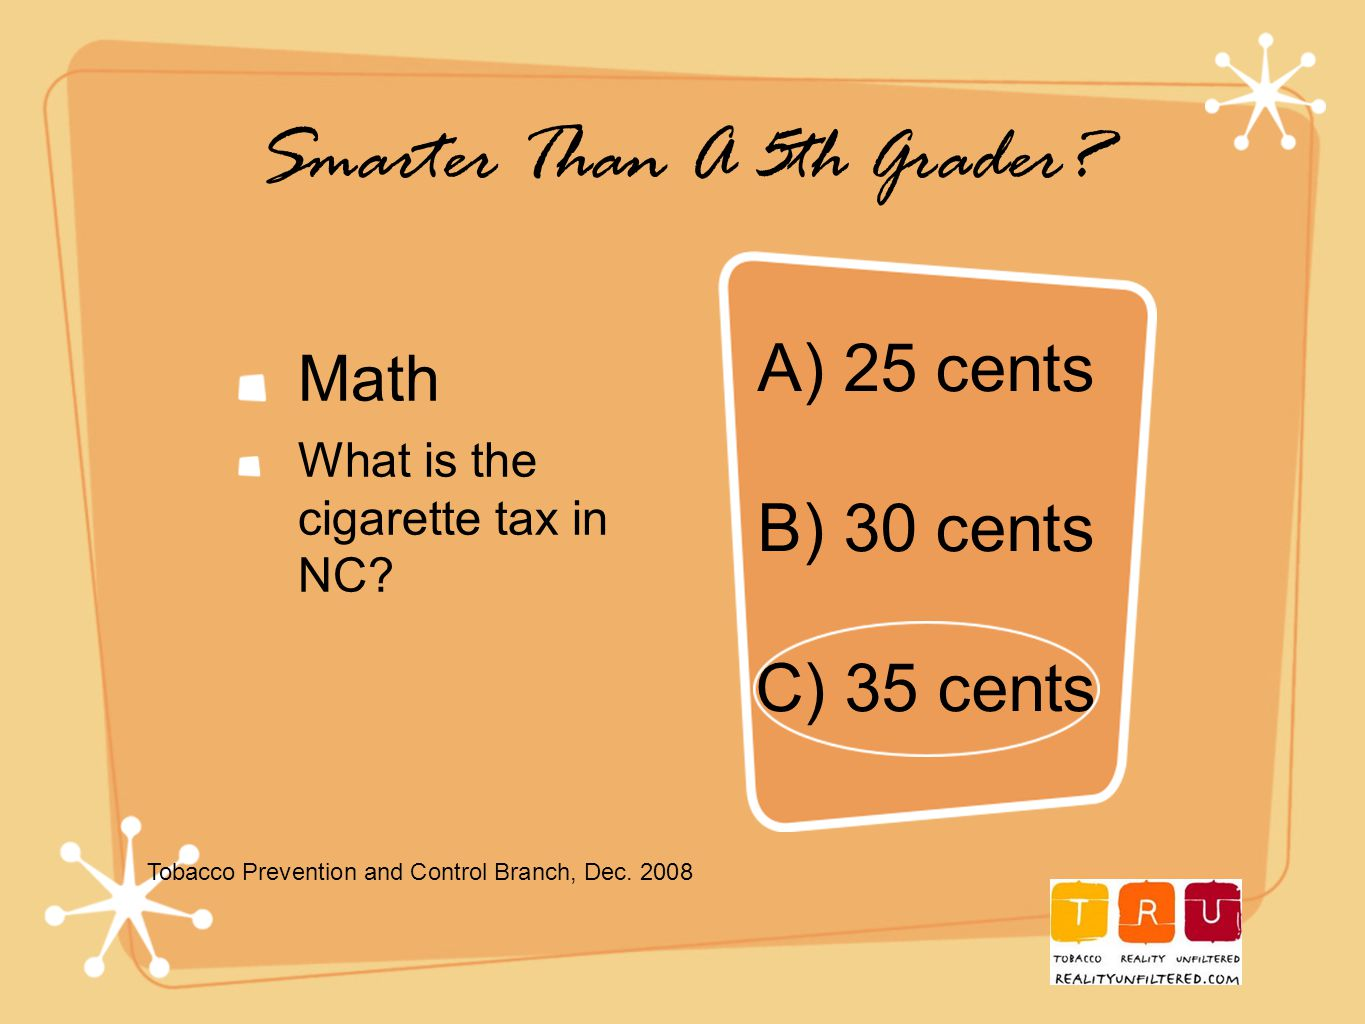 Smarter Than A 5th Grader. Math What is the cigarette tax in NC.